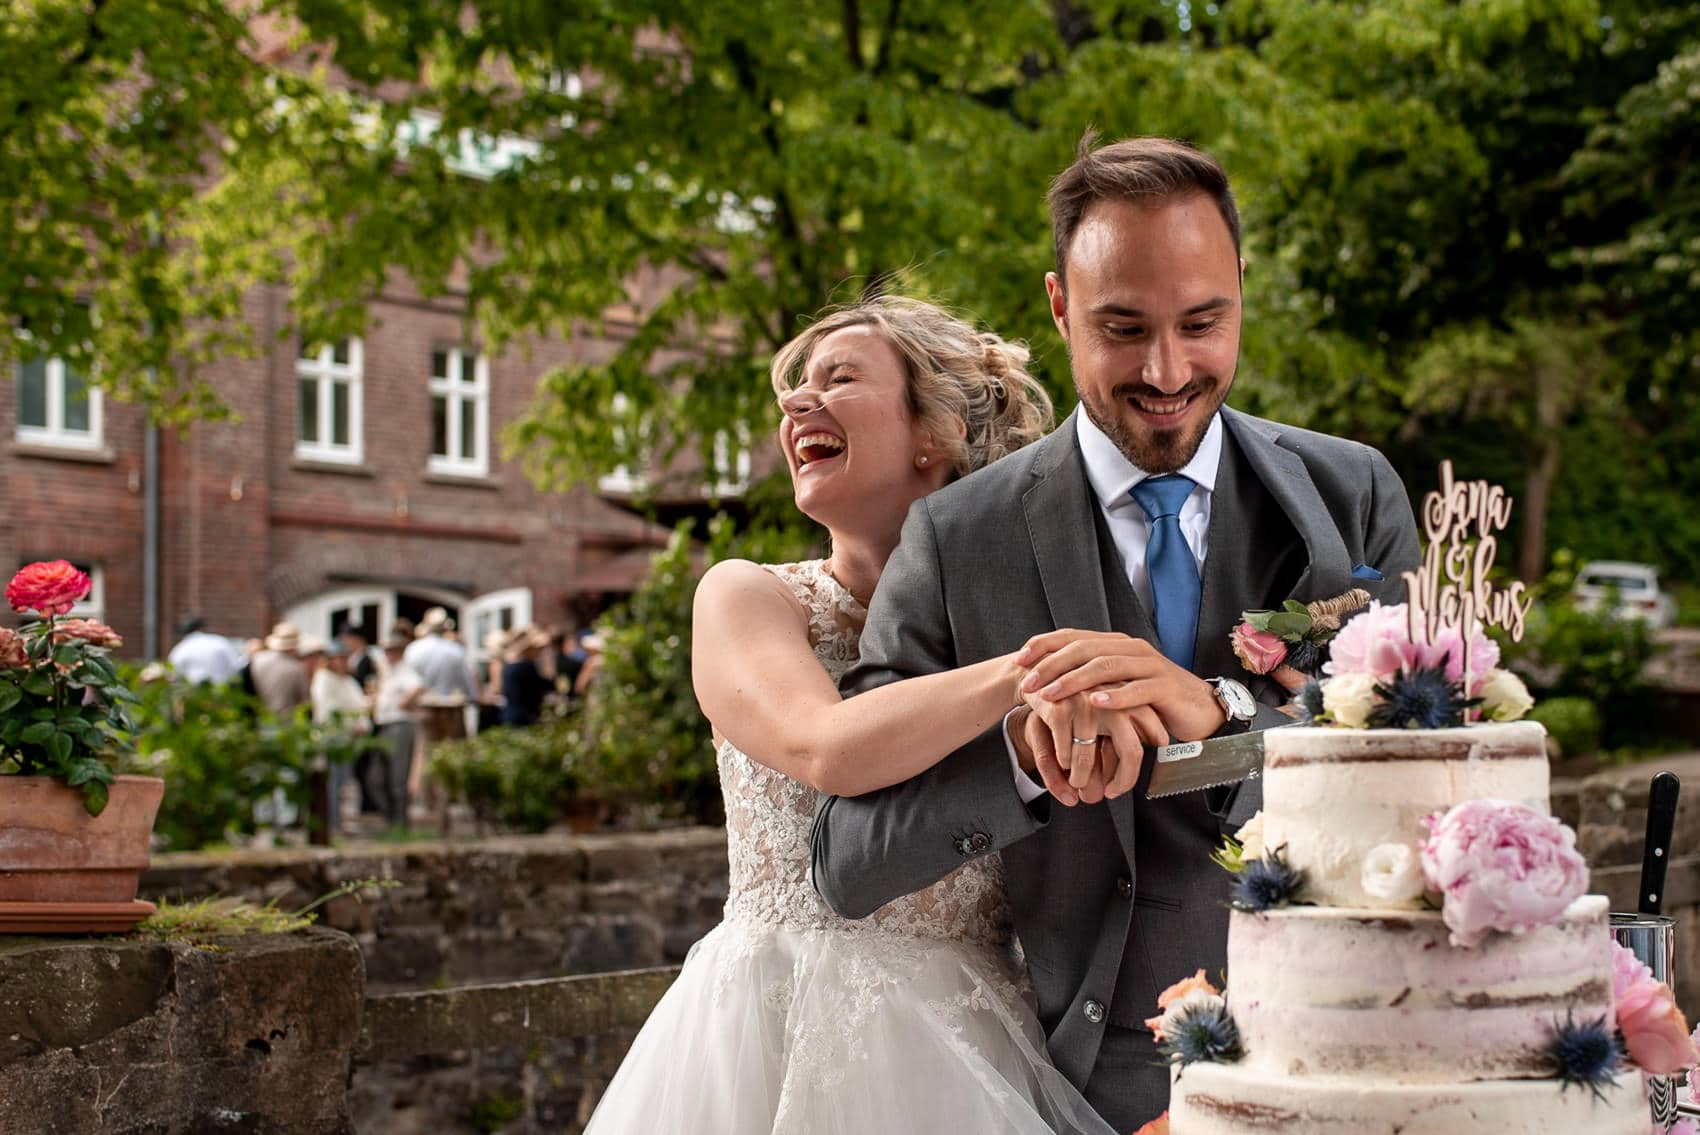 Photo of bride and groom cutting their cake and laughing at the Dusseldorf Destination wedding